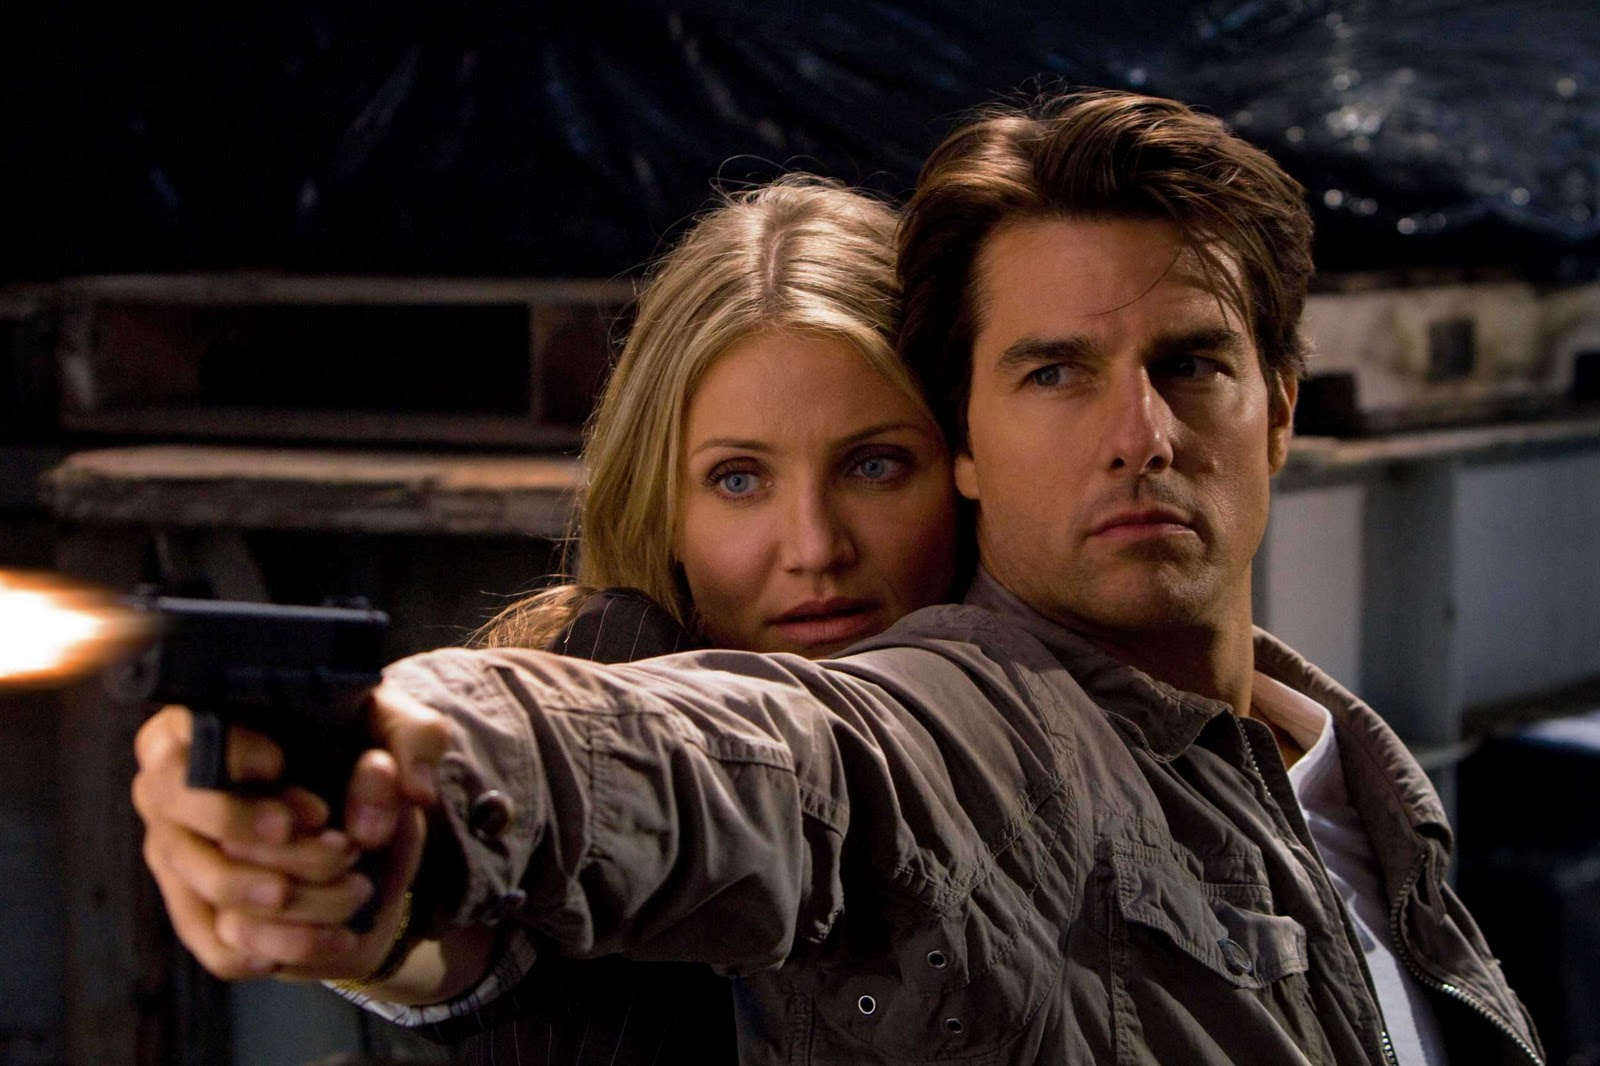 http://4.bp.blogspot.com/_NQQtTtrm7uk/TRz9xF-BEfI/AAAAAAAAGAo/B1KiEmuQfN4/s1600/knight_day_movie_image_cameron_diaz_tom_cruise_011.jpg